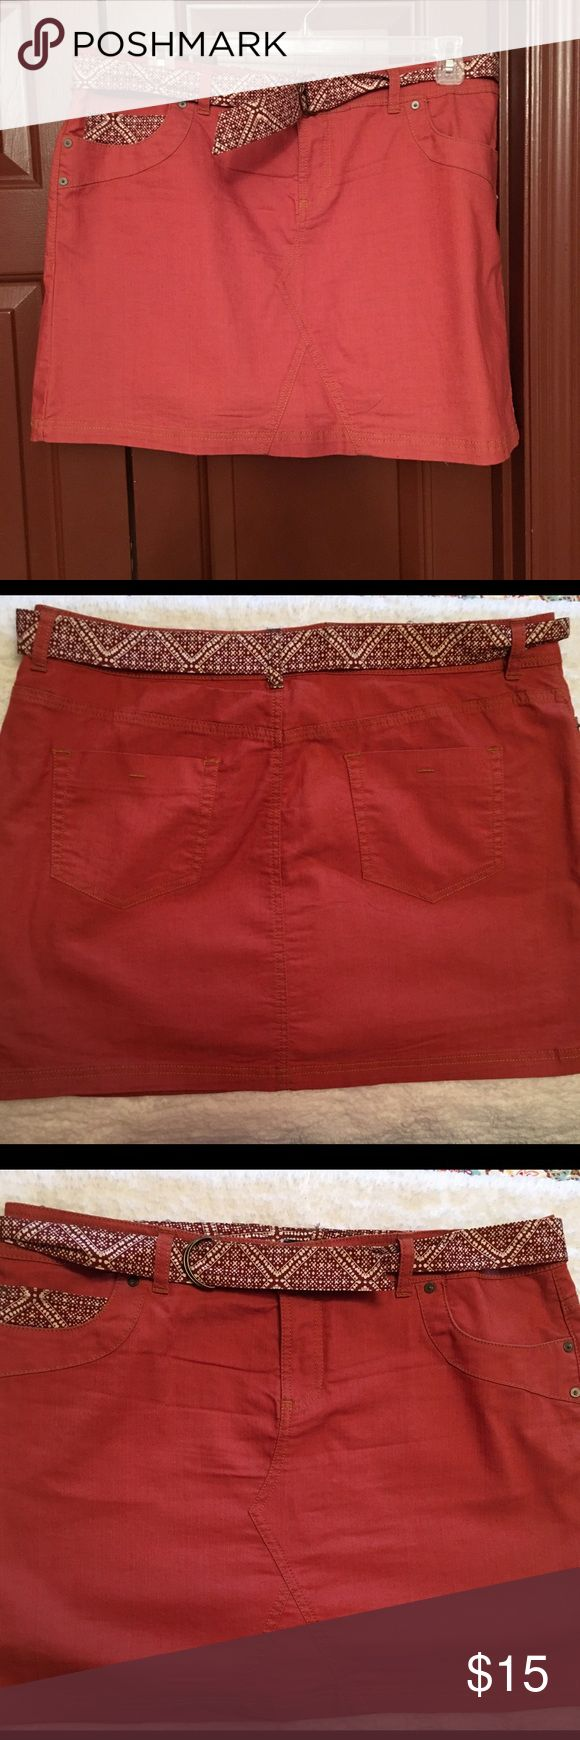 Sonoma Belted Skort Sonoma coral skort, belted  with pockets, in great condition, size 16 Sonoma Shorts Skorts